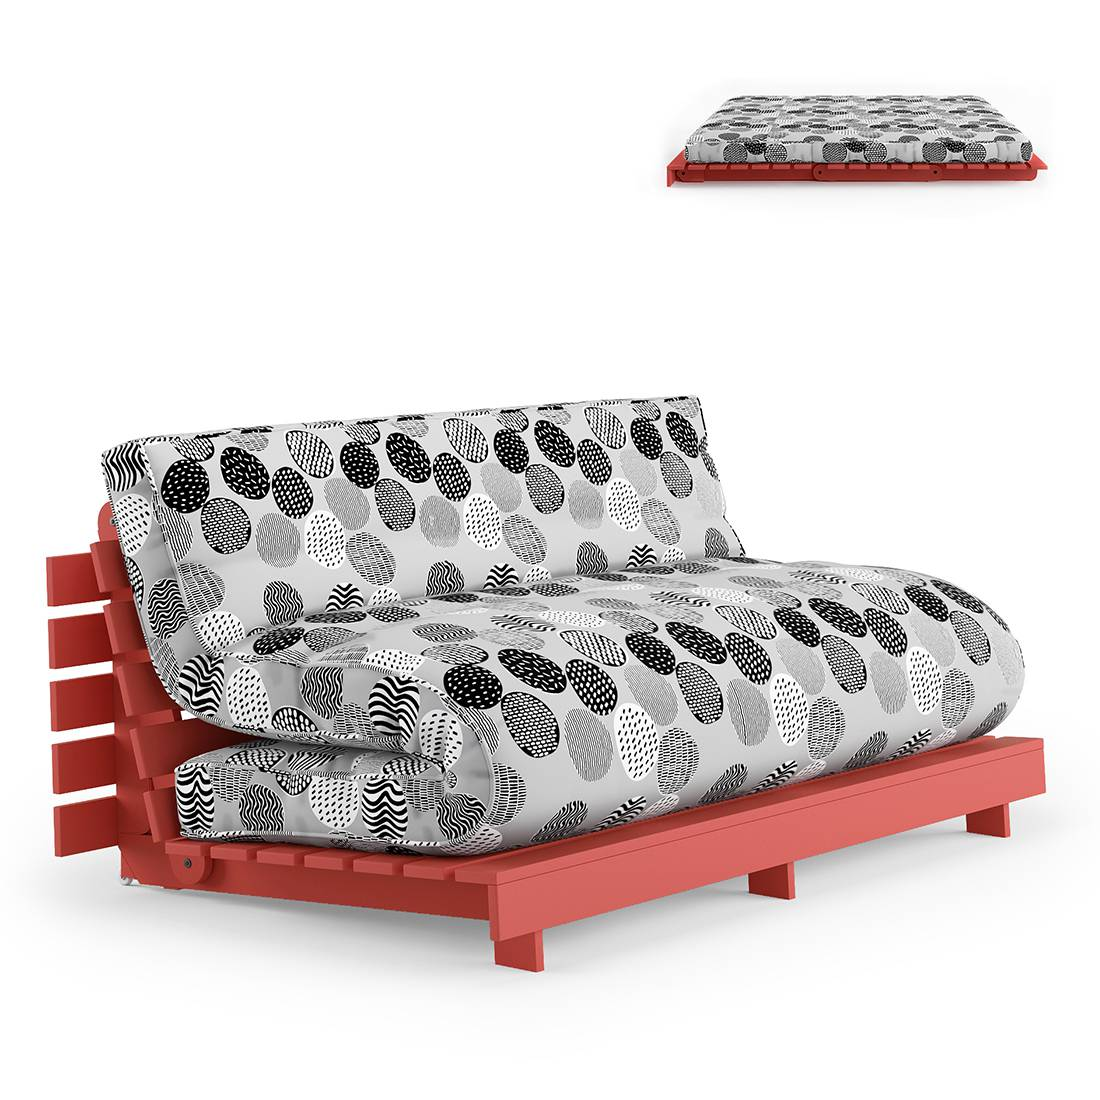 Durable Futon Beds Online In India